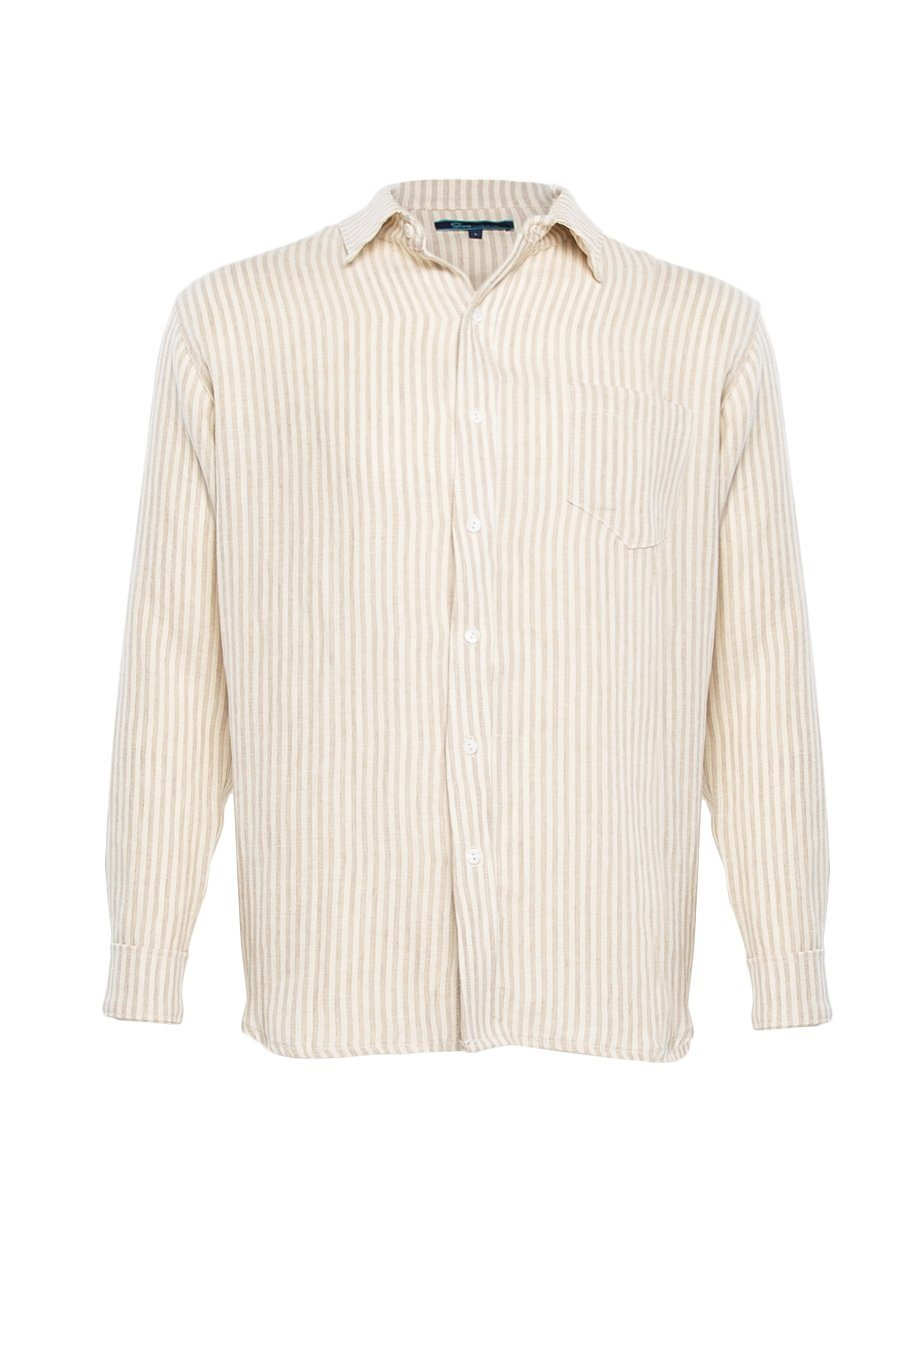 Linen Button Up Shirt - Oatmeal Stripe